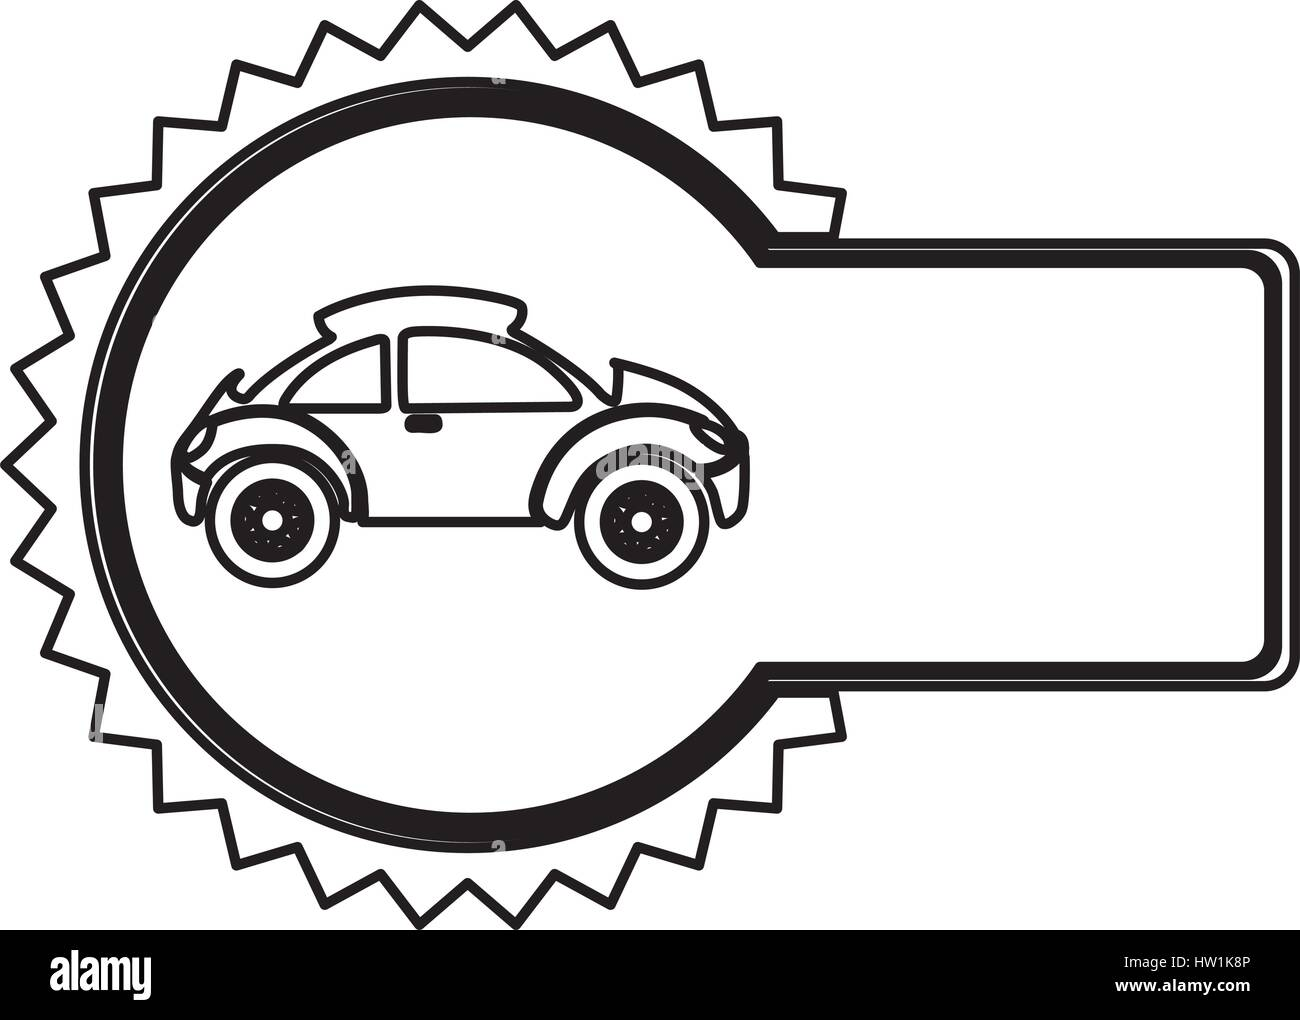 Emblem Sport Car Side Icon Stock Vector Art Illustration Vector